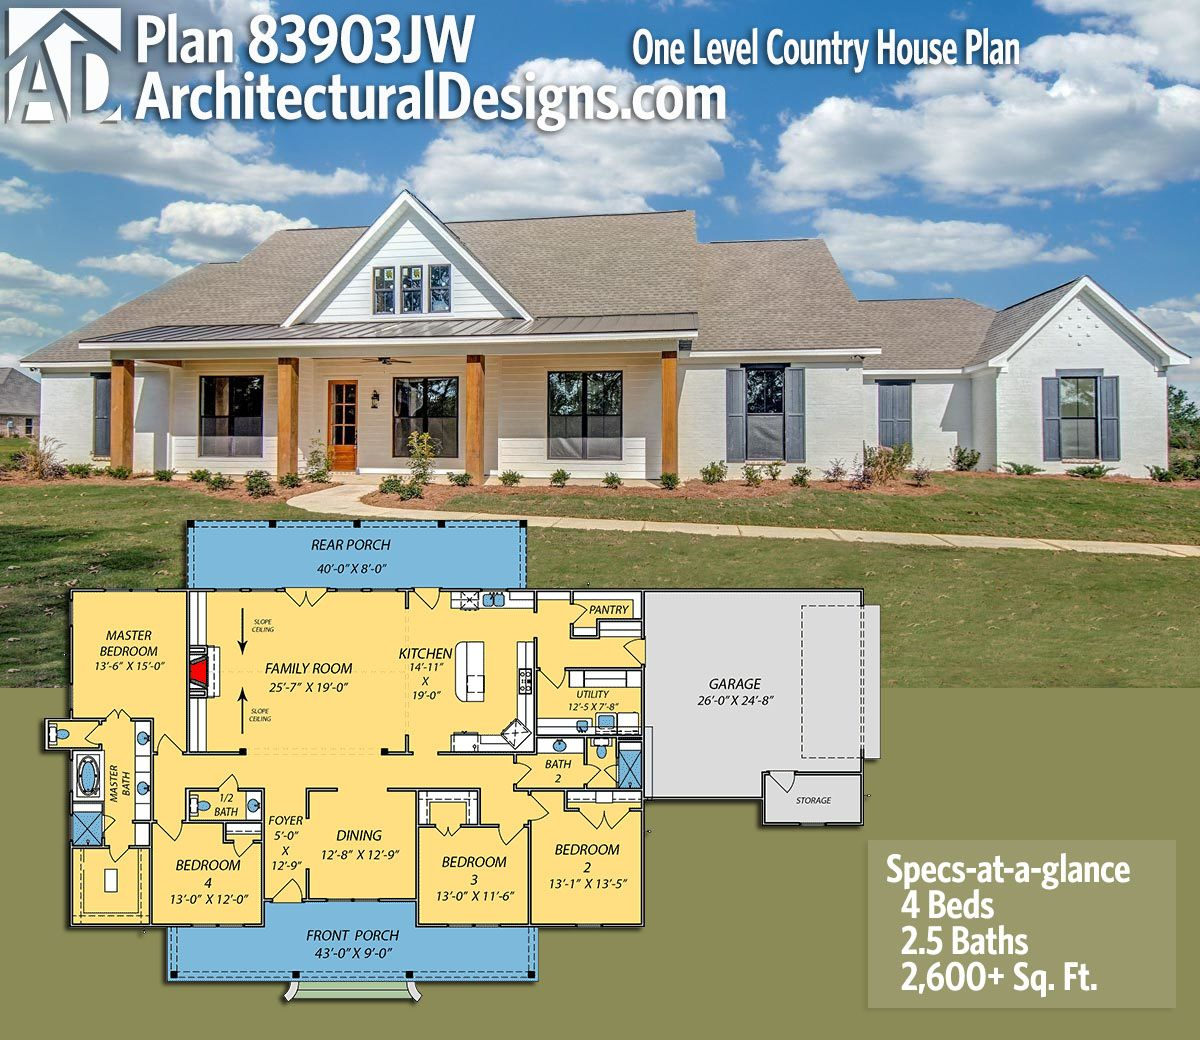 Plan 83903jw One Level Country House Plan Architectural